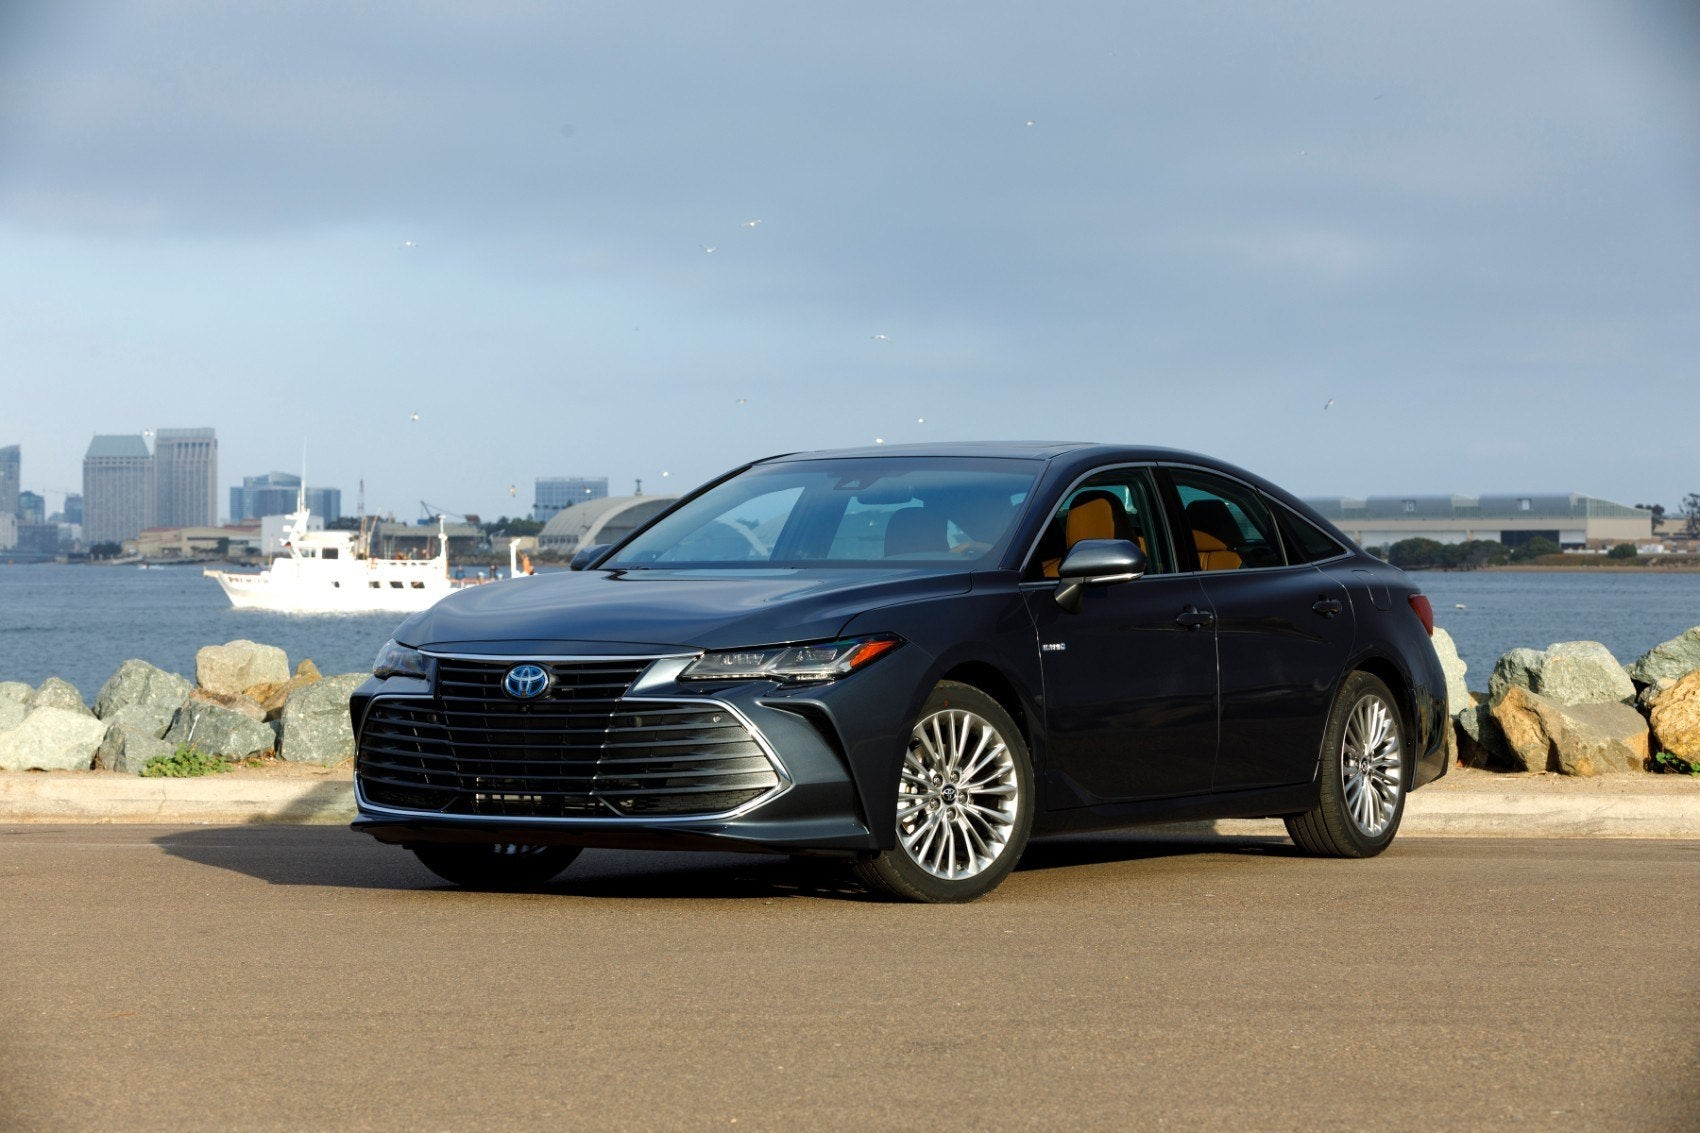 Toyota Hybrid Cars >> 2019 Toyota Avalon Hybrid Limited Review: Ideal For Work ...